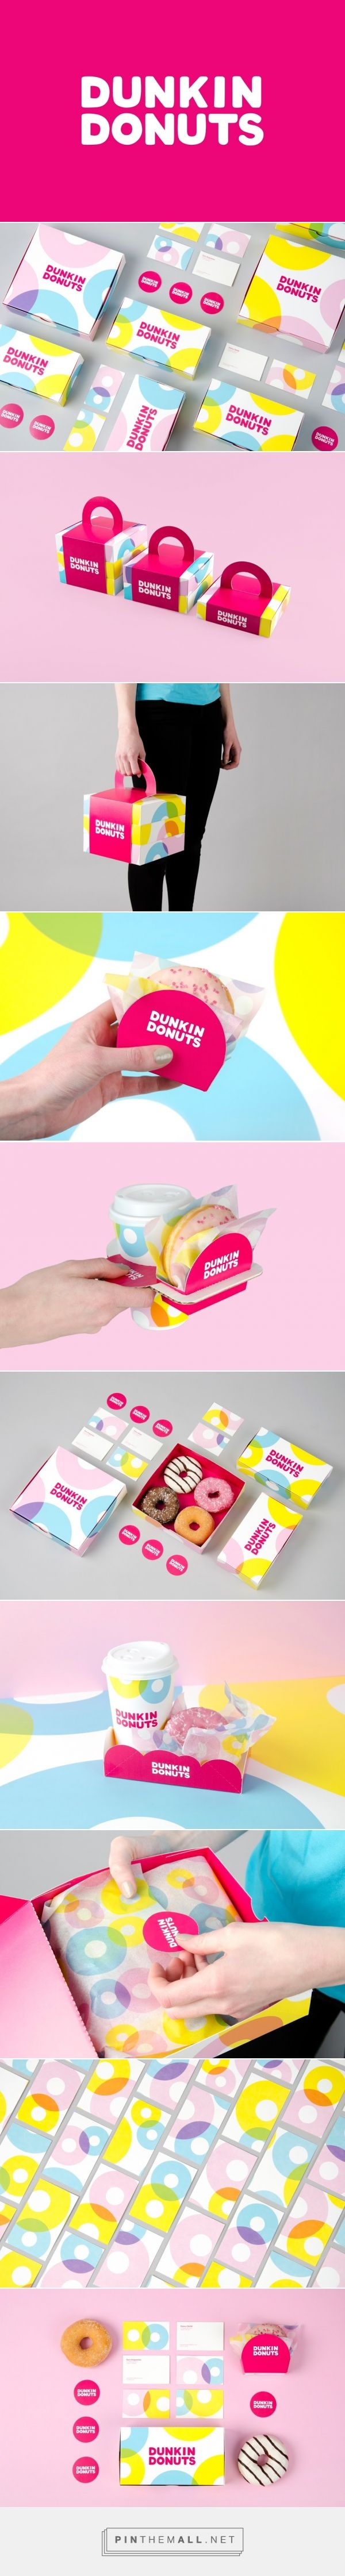 Dunkin Donuts (Student Project) - Packaging of the World - Creative Package Design Gallery - http://www.packagingoftheworld.com/2016/05/dunkin-donuts-student-project.html